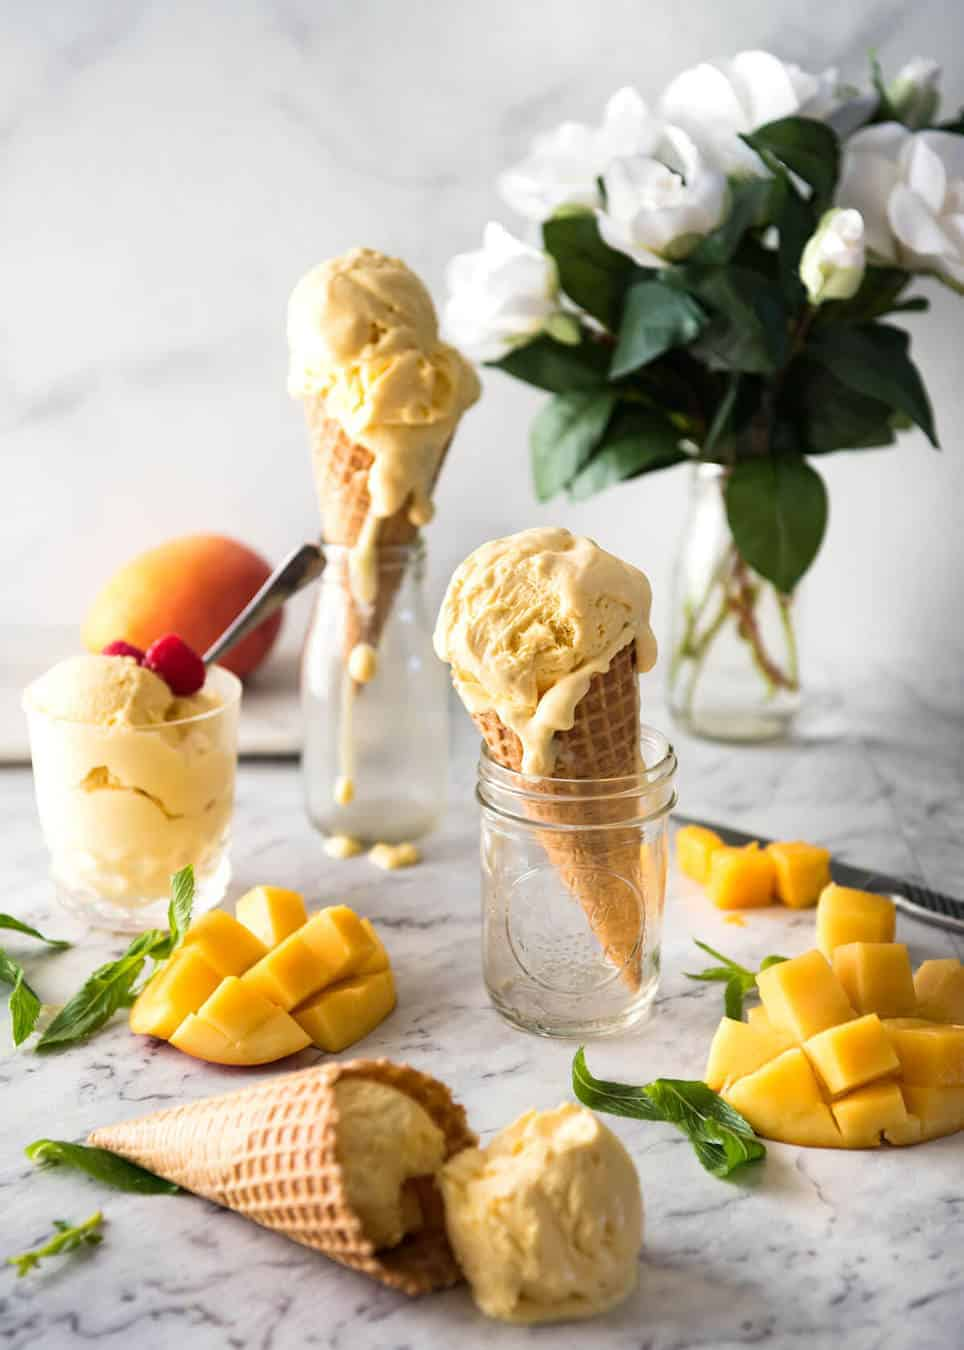 Homemade mango ice-cream in ice cream cones and in cups, with cheeks of cut mango on the side.